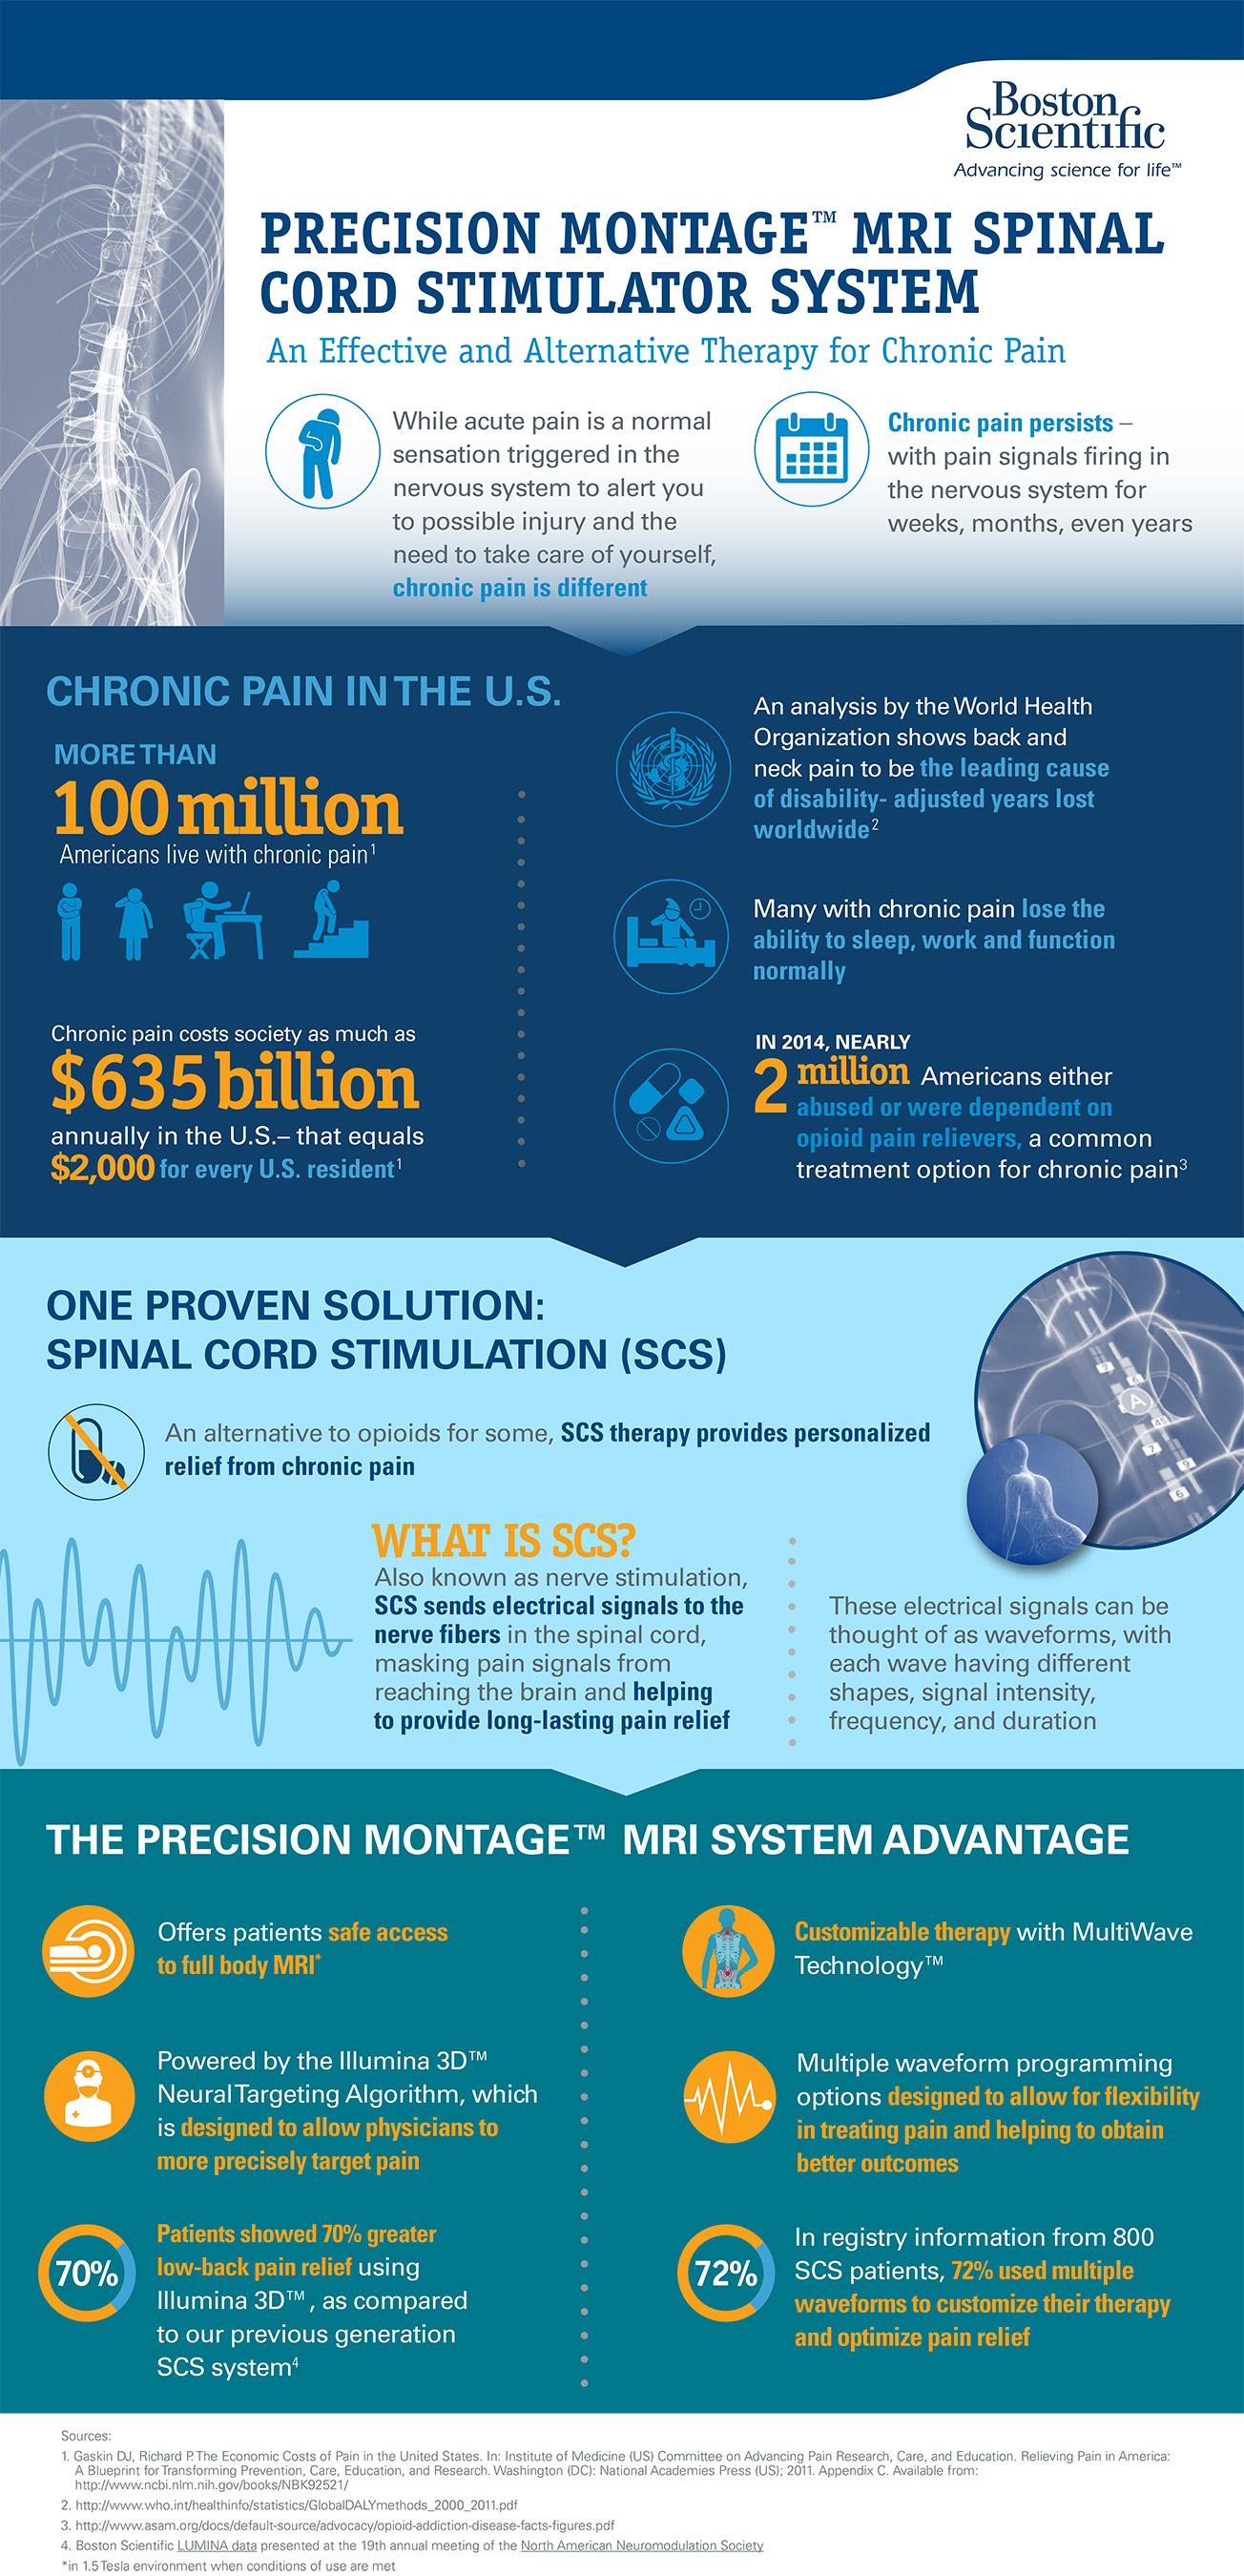 Precision Montage™ MRI SCS System Infographic: An Effective and Alternative Therapy for Chronic Pain